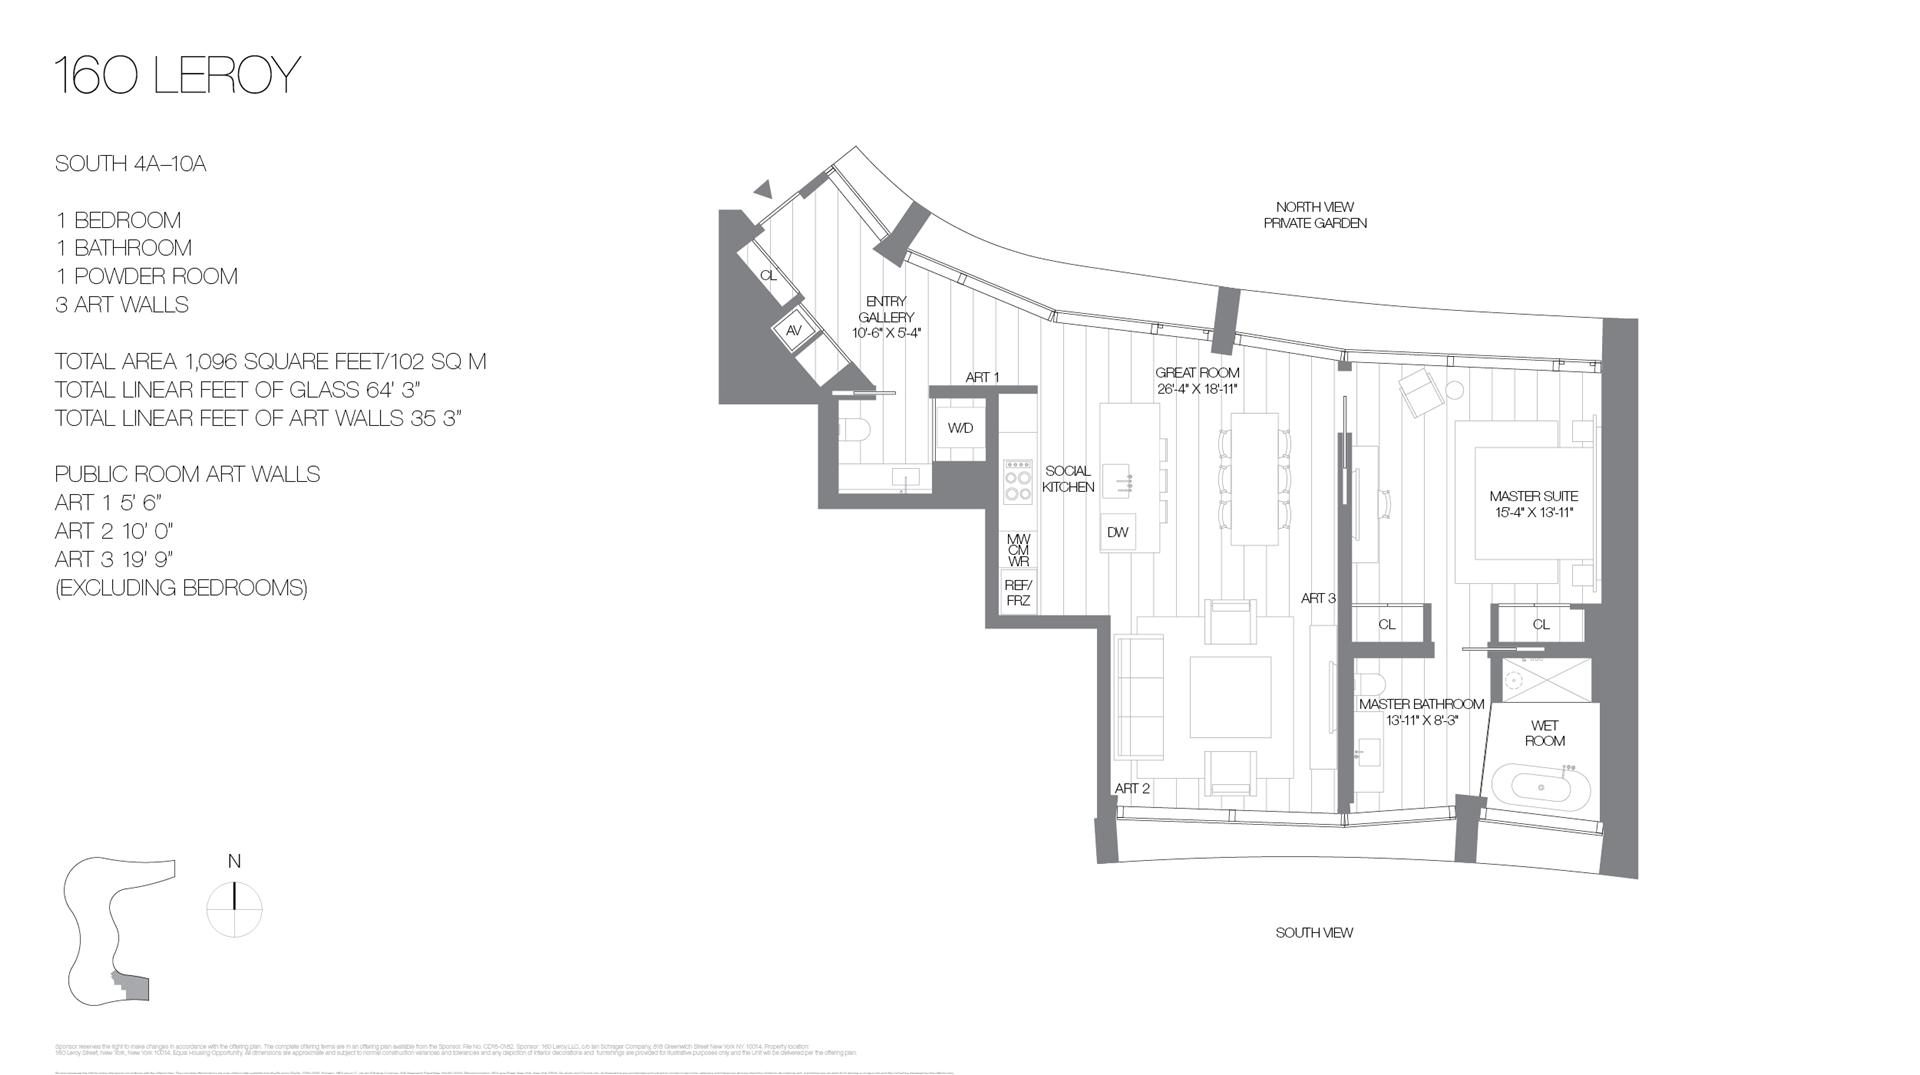 Floor plan of 160 Leroy St, SOUTH8A - West Village - Meatpacking District, New York